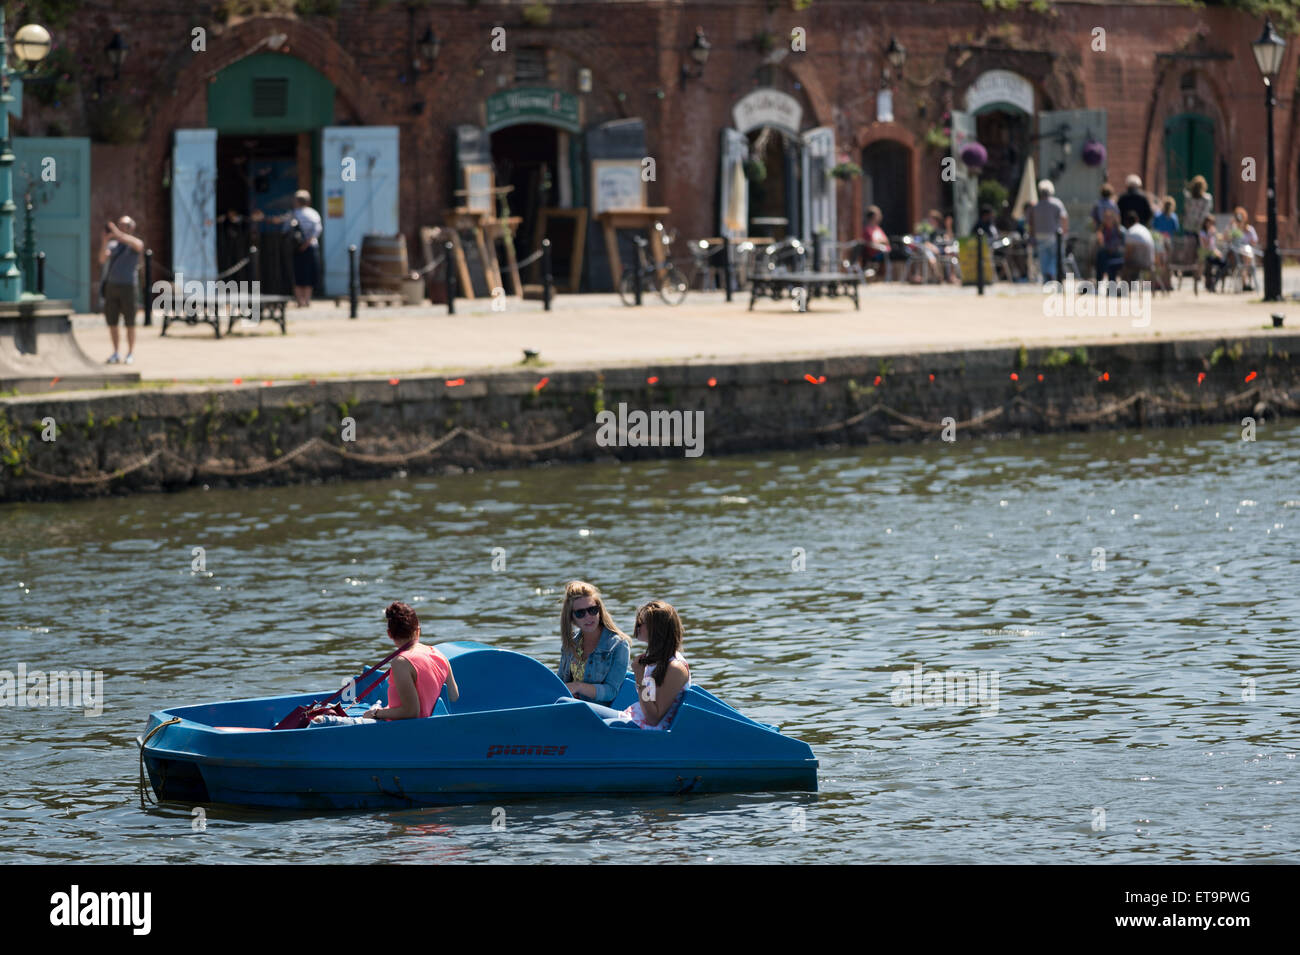 Girls in a pedalo in Exeter Quay, Devon, UK. - Stock Image